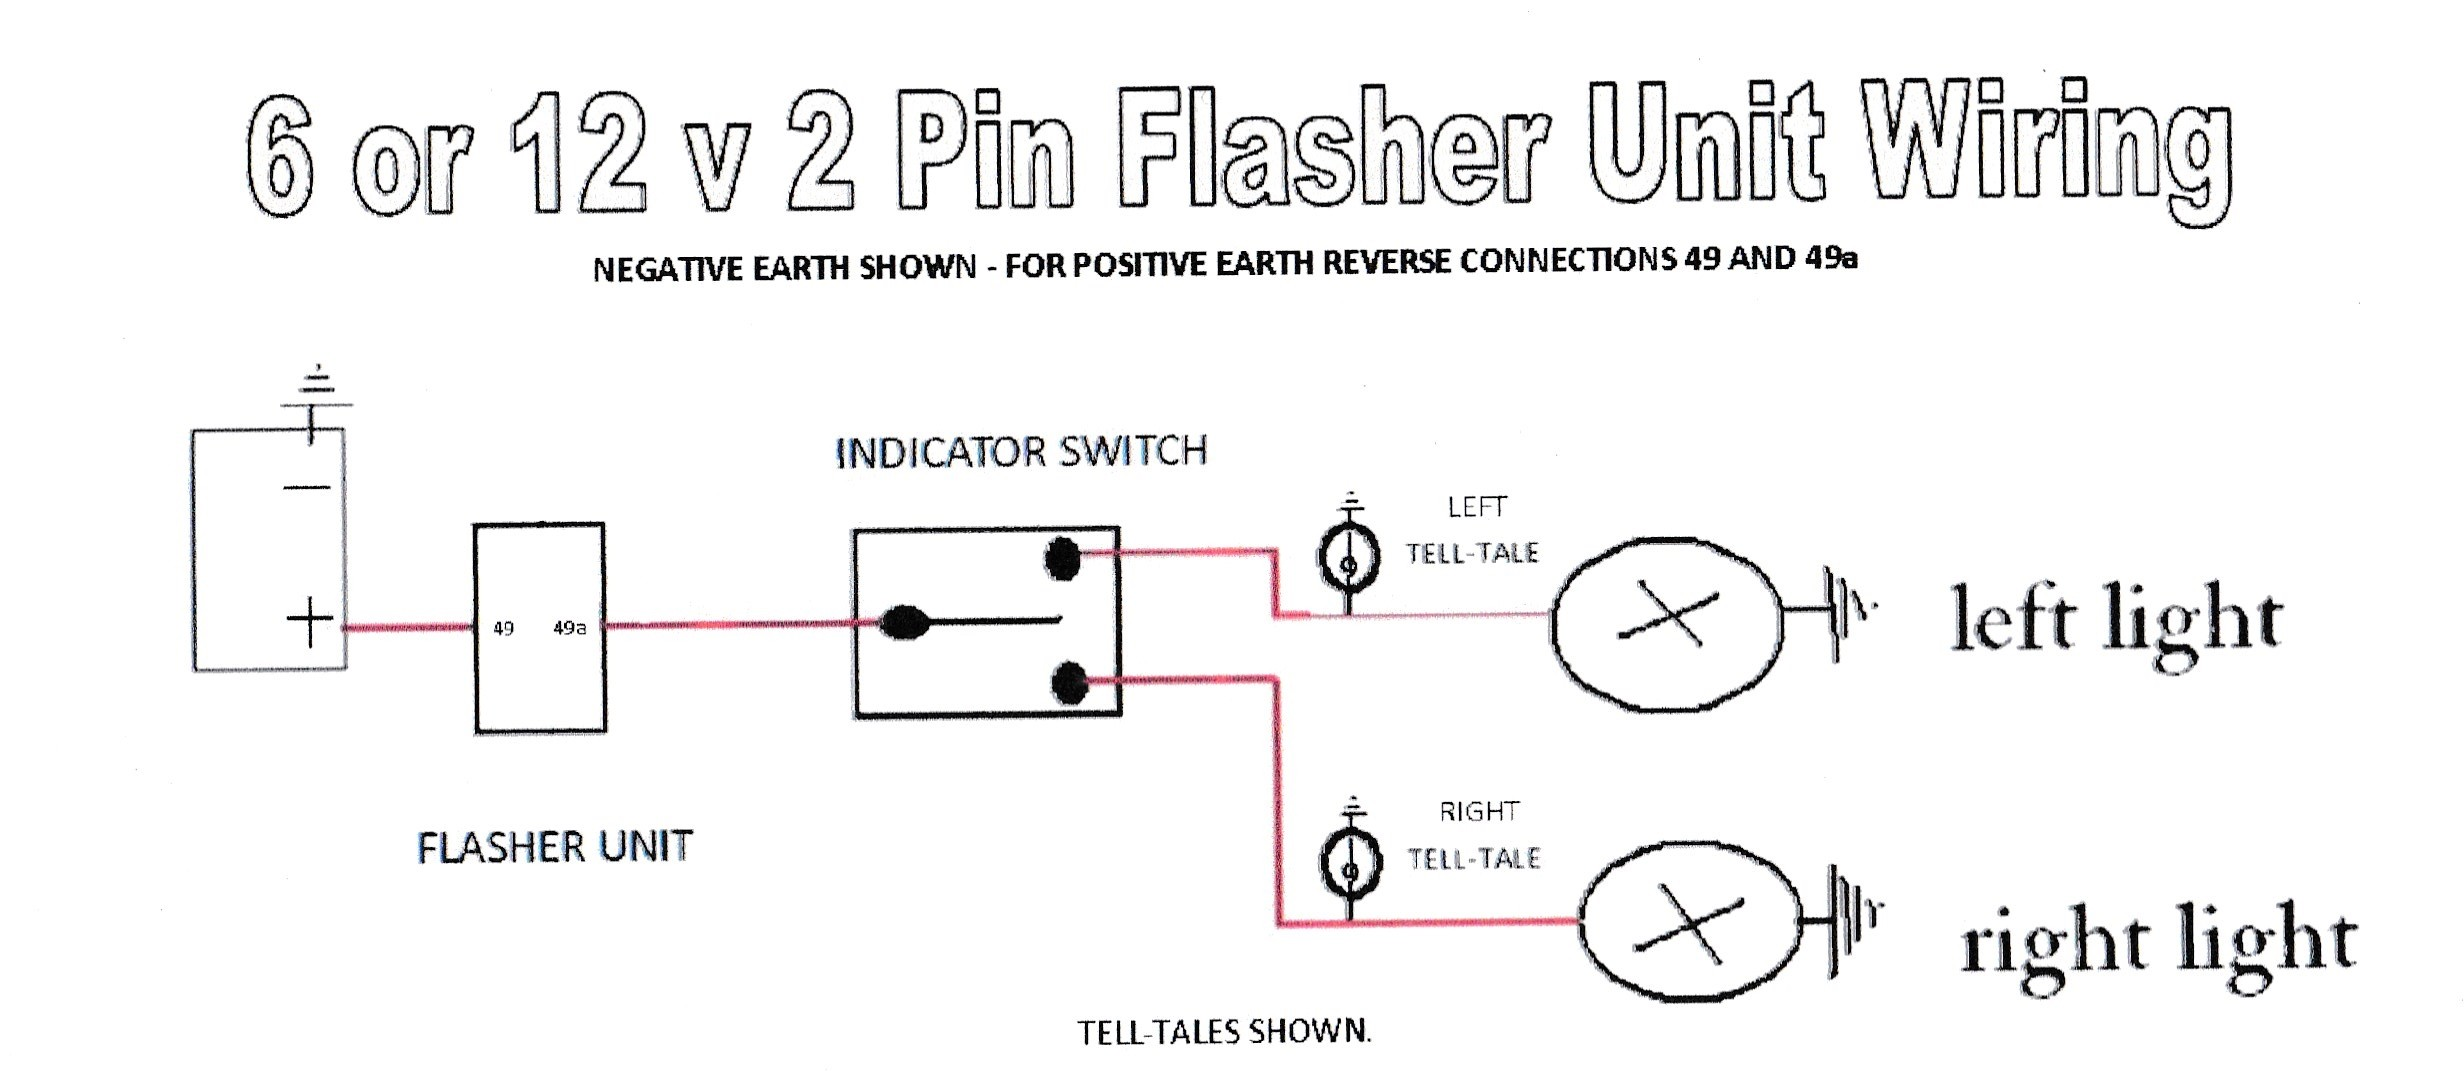 2 Pin Flasher Relay Wiring Diagram 1 with 2 Pin Flasher Relay Wiring  Diagram Wiring Diagram